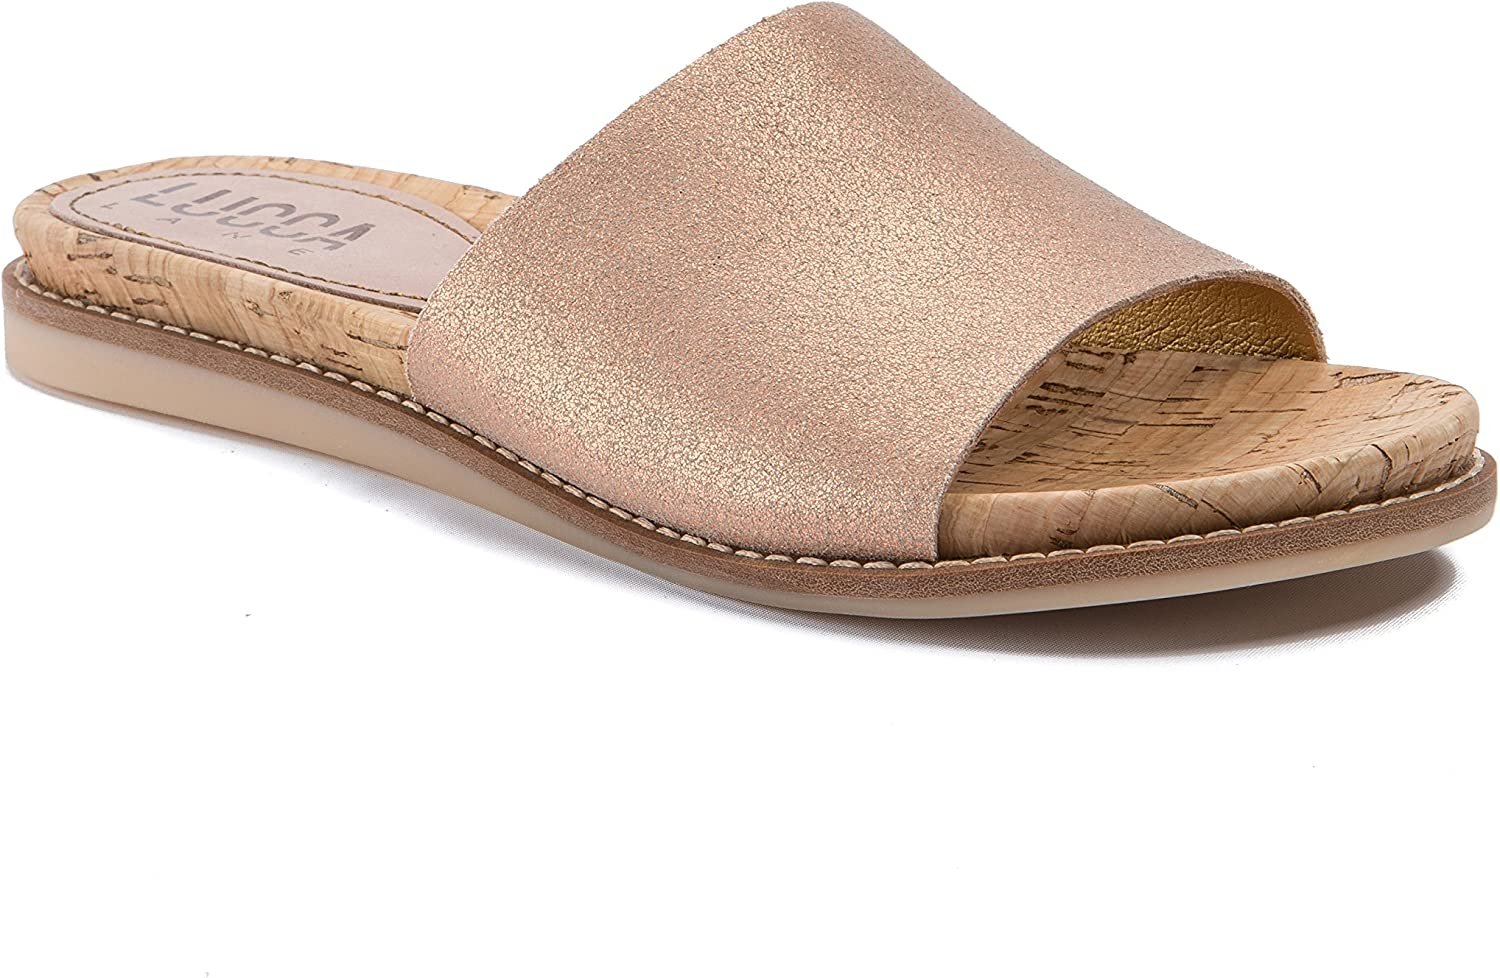 Lucca Lane Womens Bailey Leather Open Toe Casual Slide Sandals